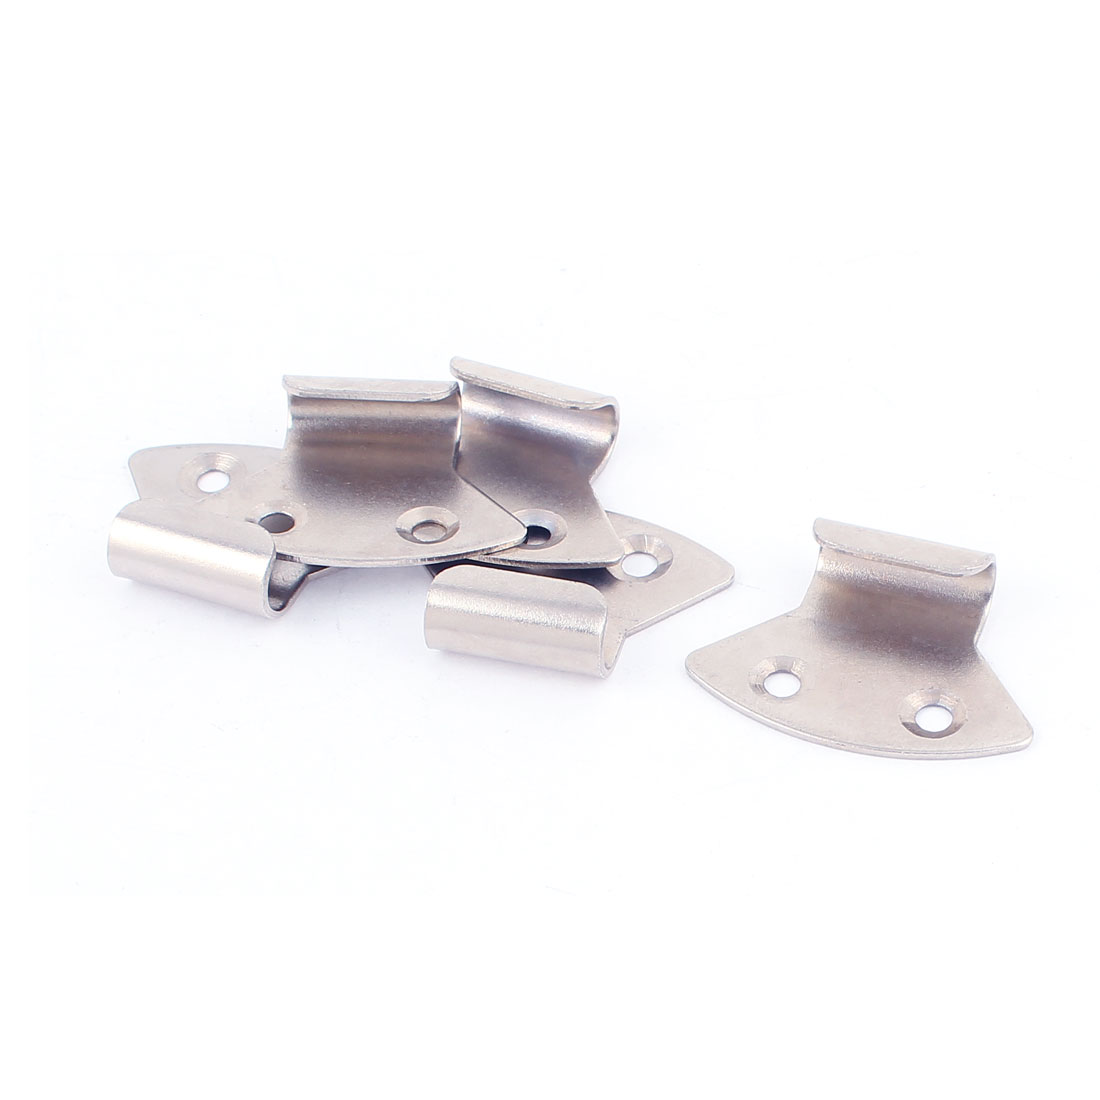 5 Pcs Metal Strike Plate 3.9cm x 2.7cm for Toggle Draw Latch